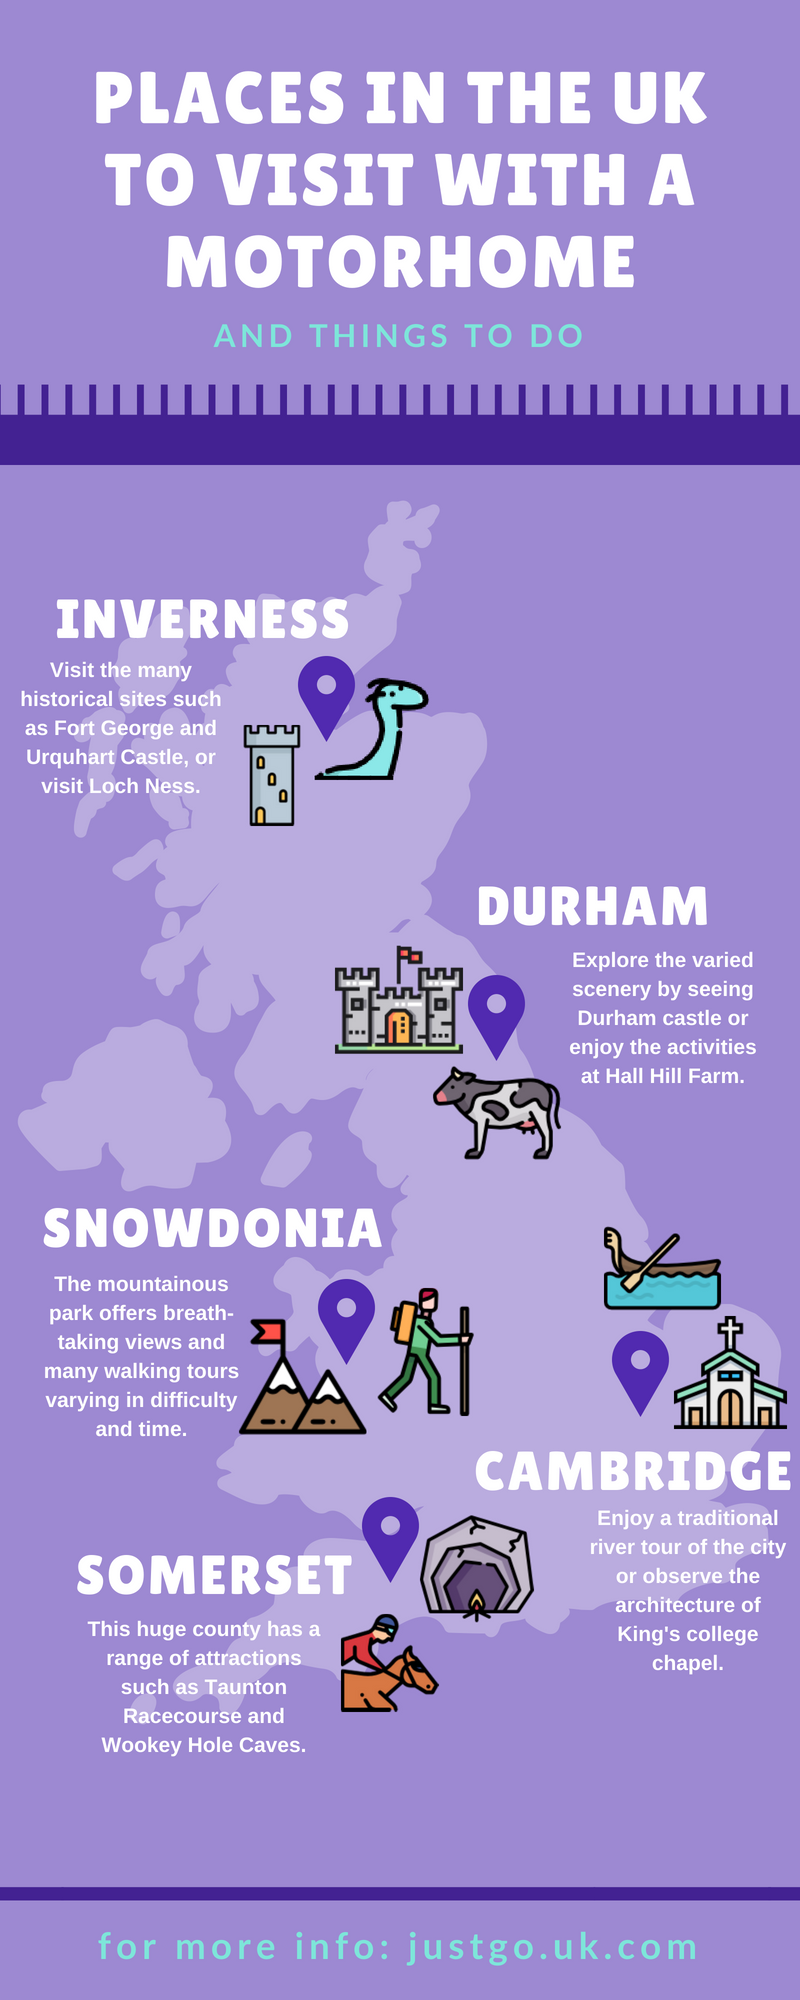 rv-hire-places-in-the-uk-infographic-plaza